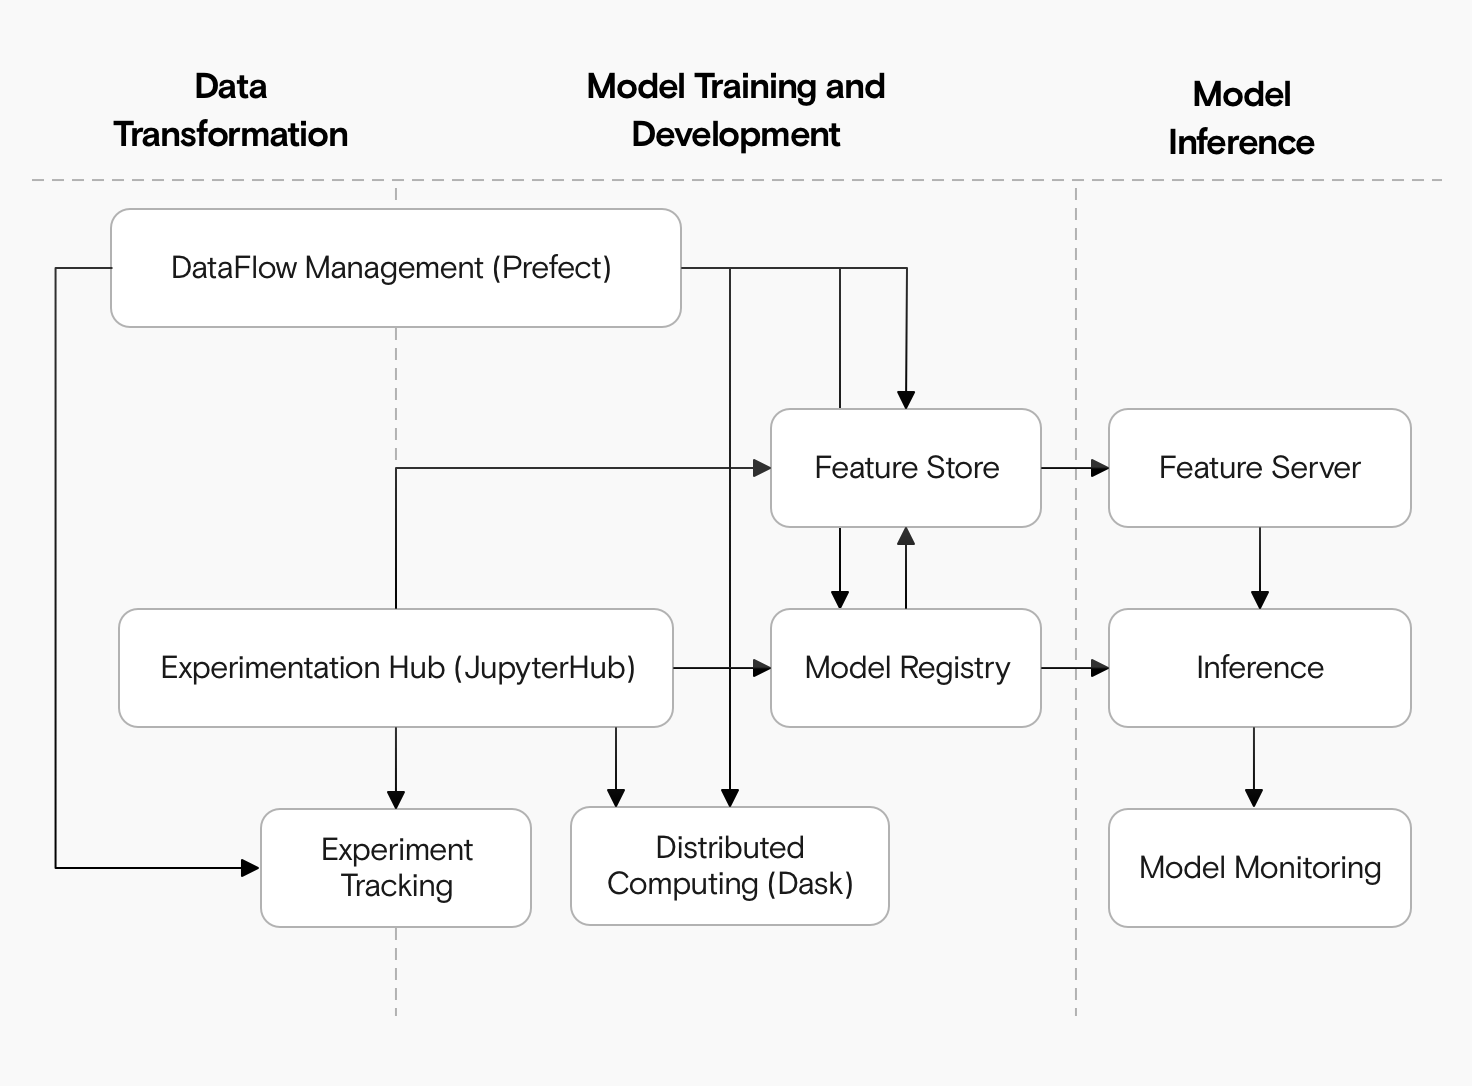 A diagram showing three columns (data transformation, model training and development, and model inference) with several components (data flow management to feature store to feature server to inference to model monitoring, also connected to experimentation hub, experiment tracking, distributed computing, and a model registry).